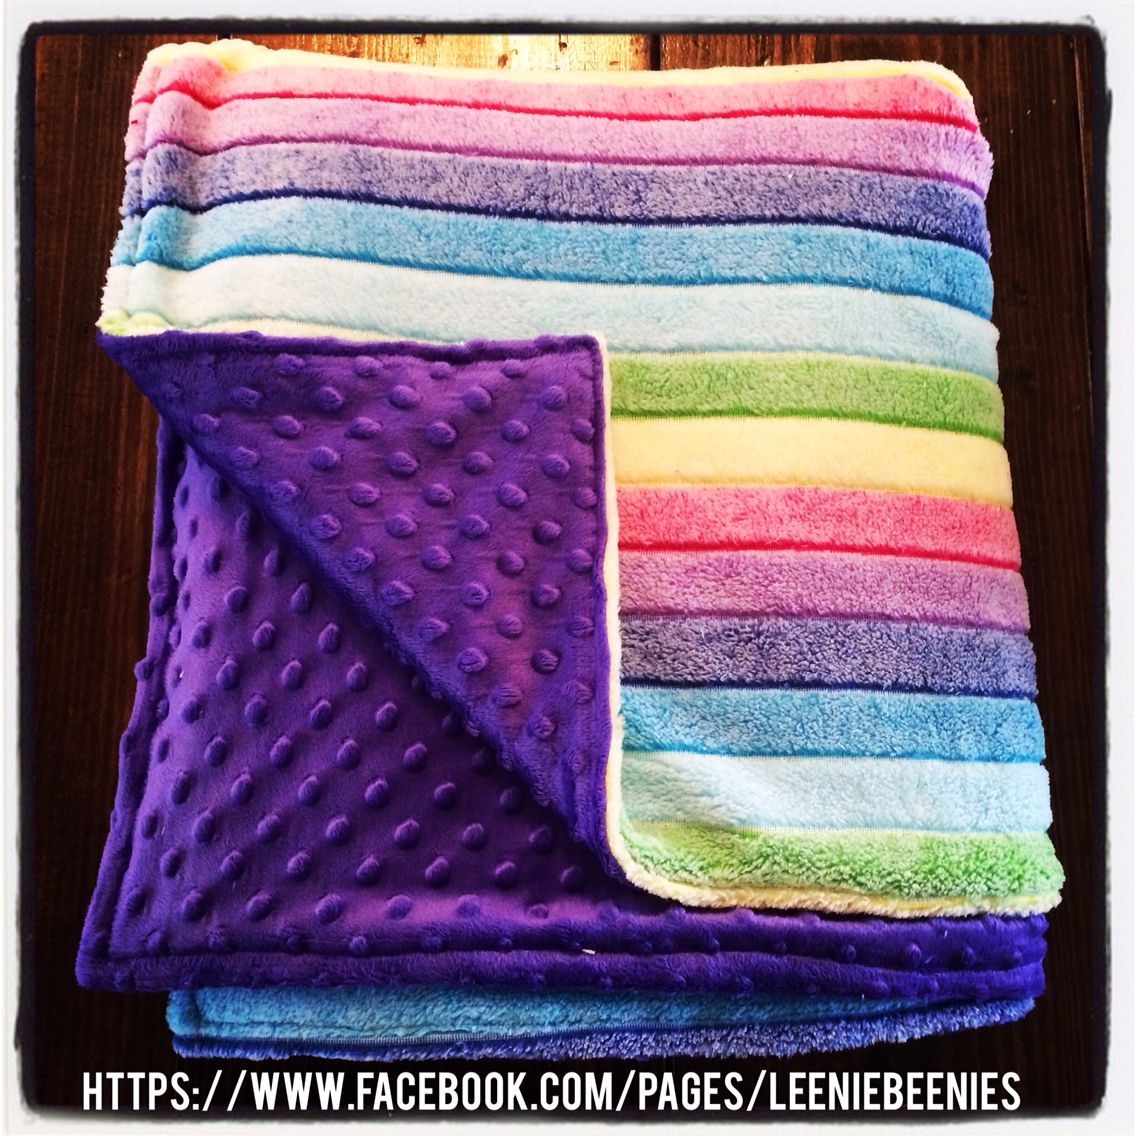 AMAZING blanket!!! Sold in Adult and baby sizes! Soooo worth the money!!!!  https://www.facebook.com/pages/LeenieBeenies/711096315636789